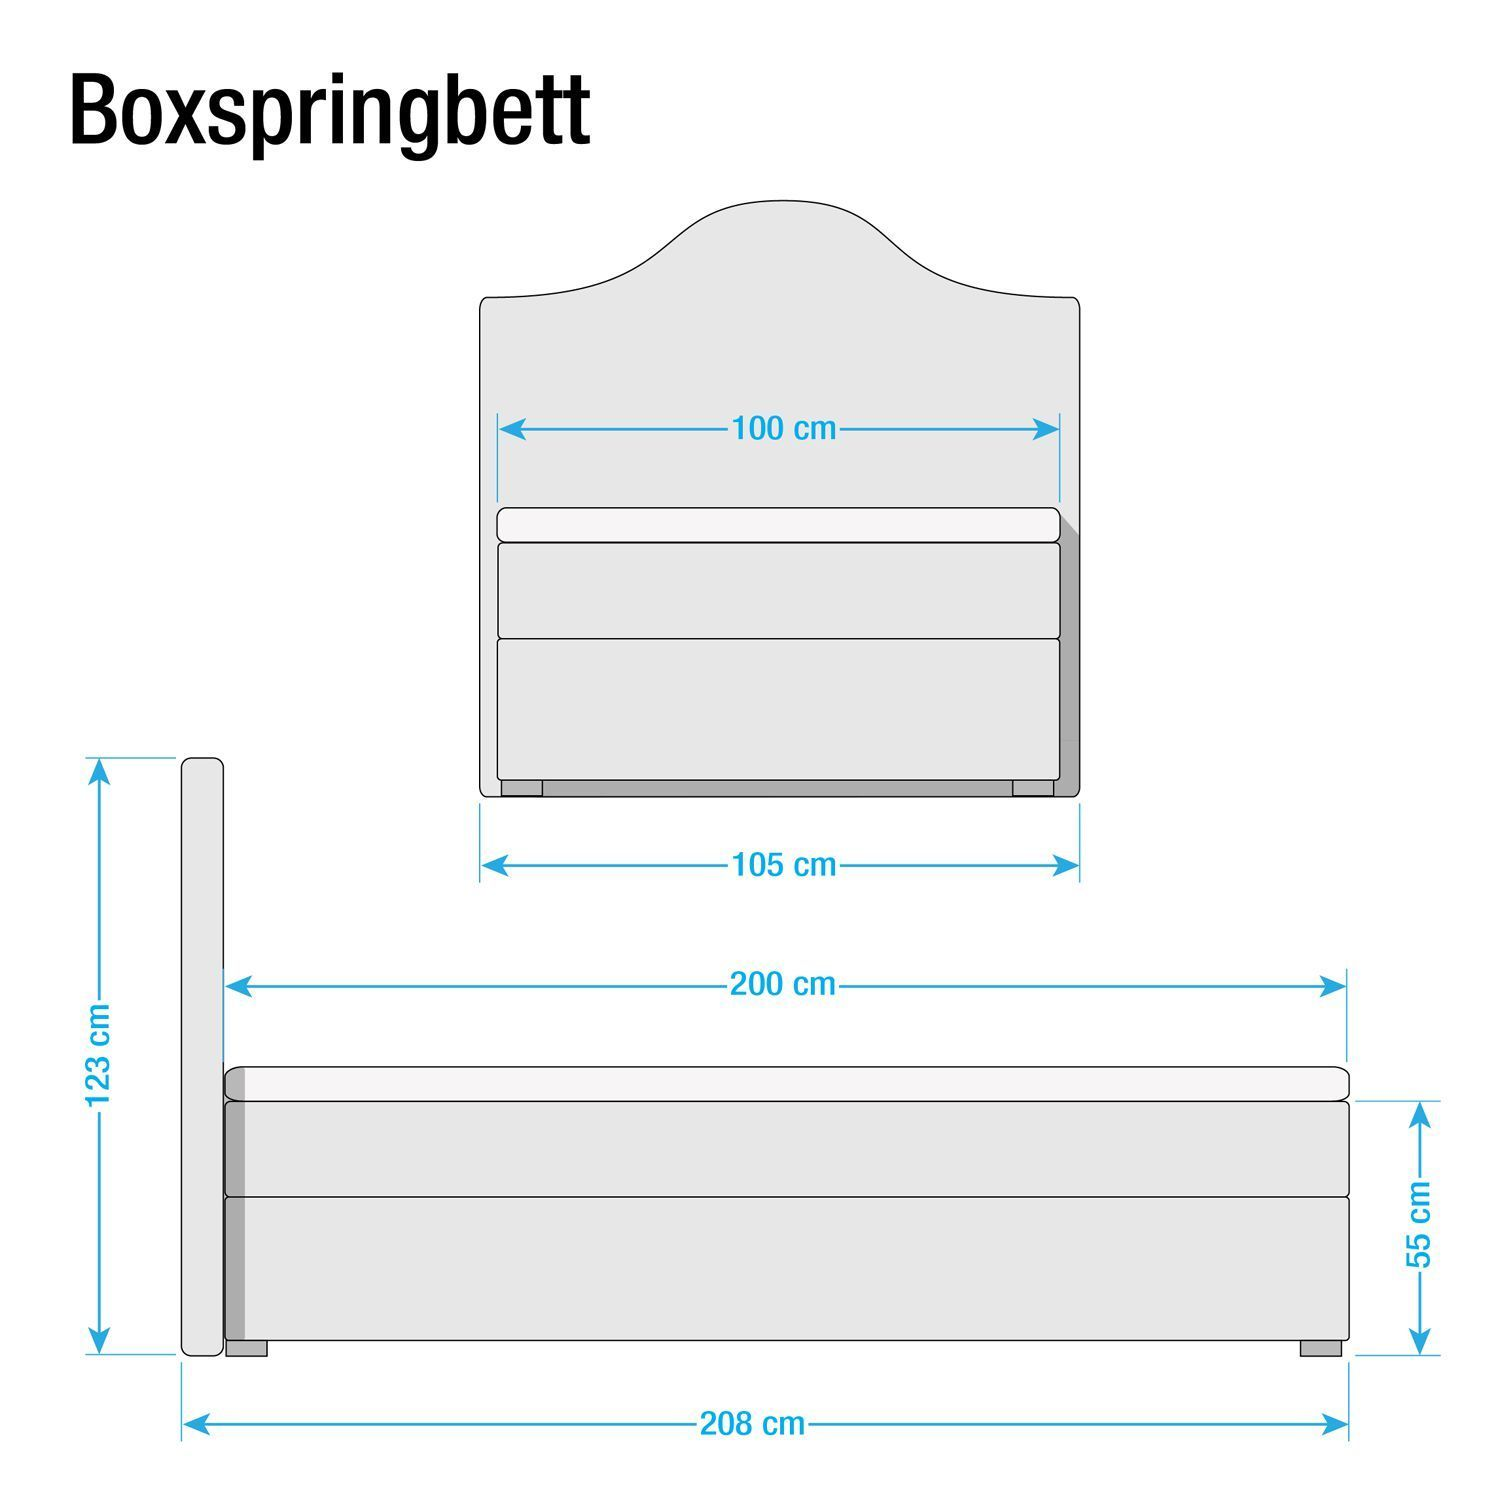 Boxspringbetten kaufen | Bett mit & ohne Bettbox#kitchengarden #gardenflowers #gardensbythebay #homedesign #bedroomdesign #interiordesigner #furnituredesign #designideas #designinspiration #designlovers #designersaree #designsponge #designersarees #designbuild #designersuits